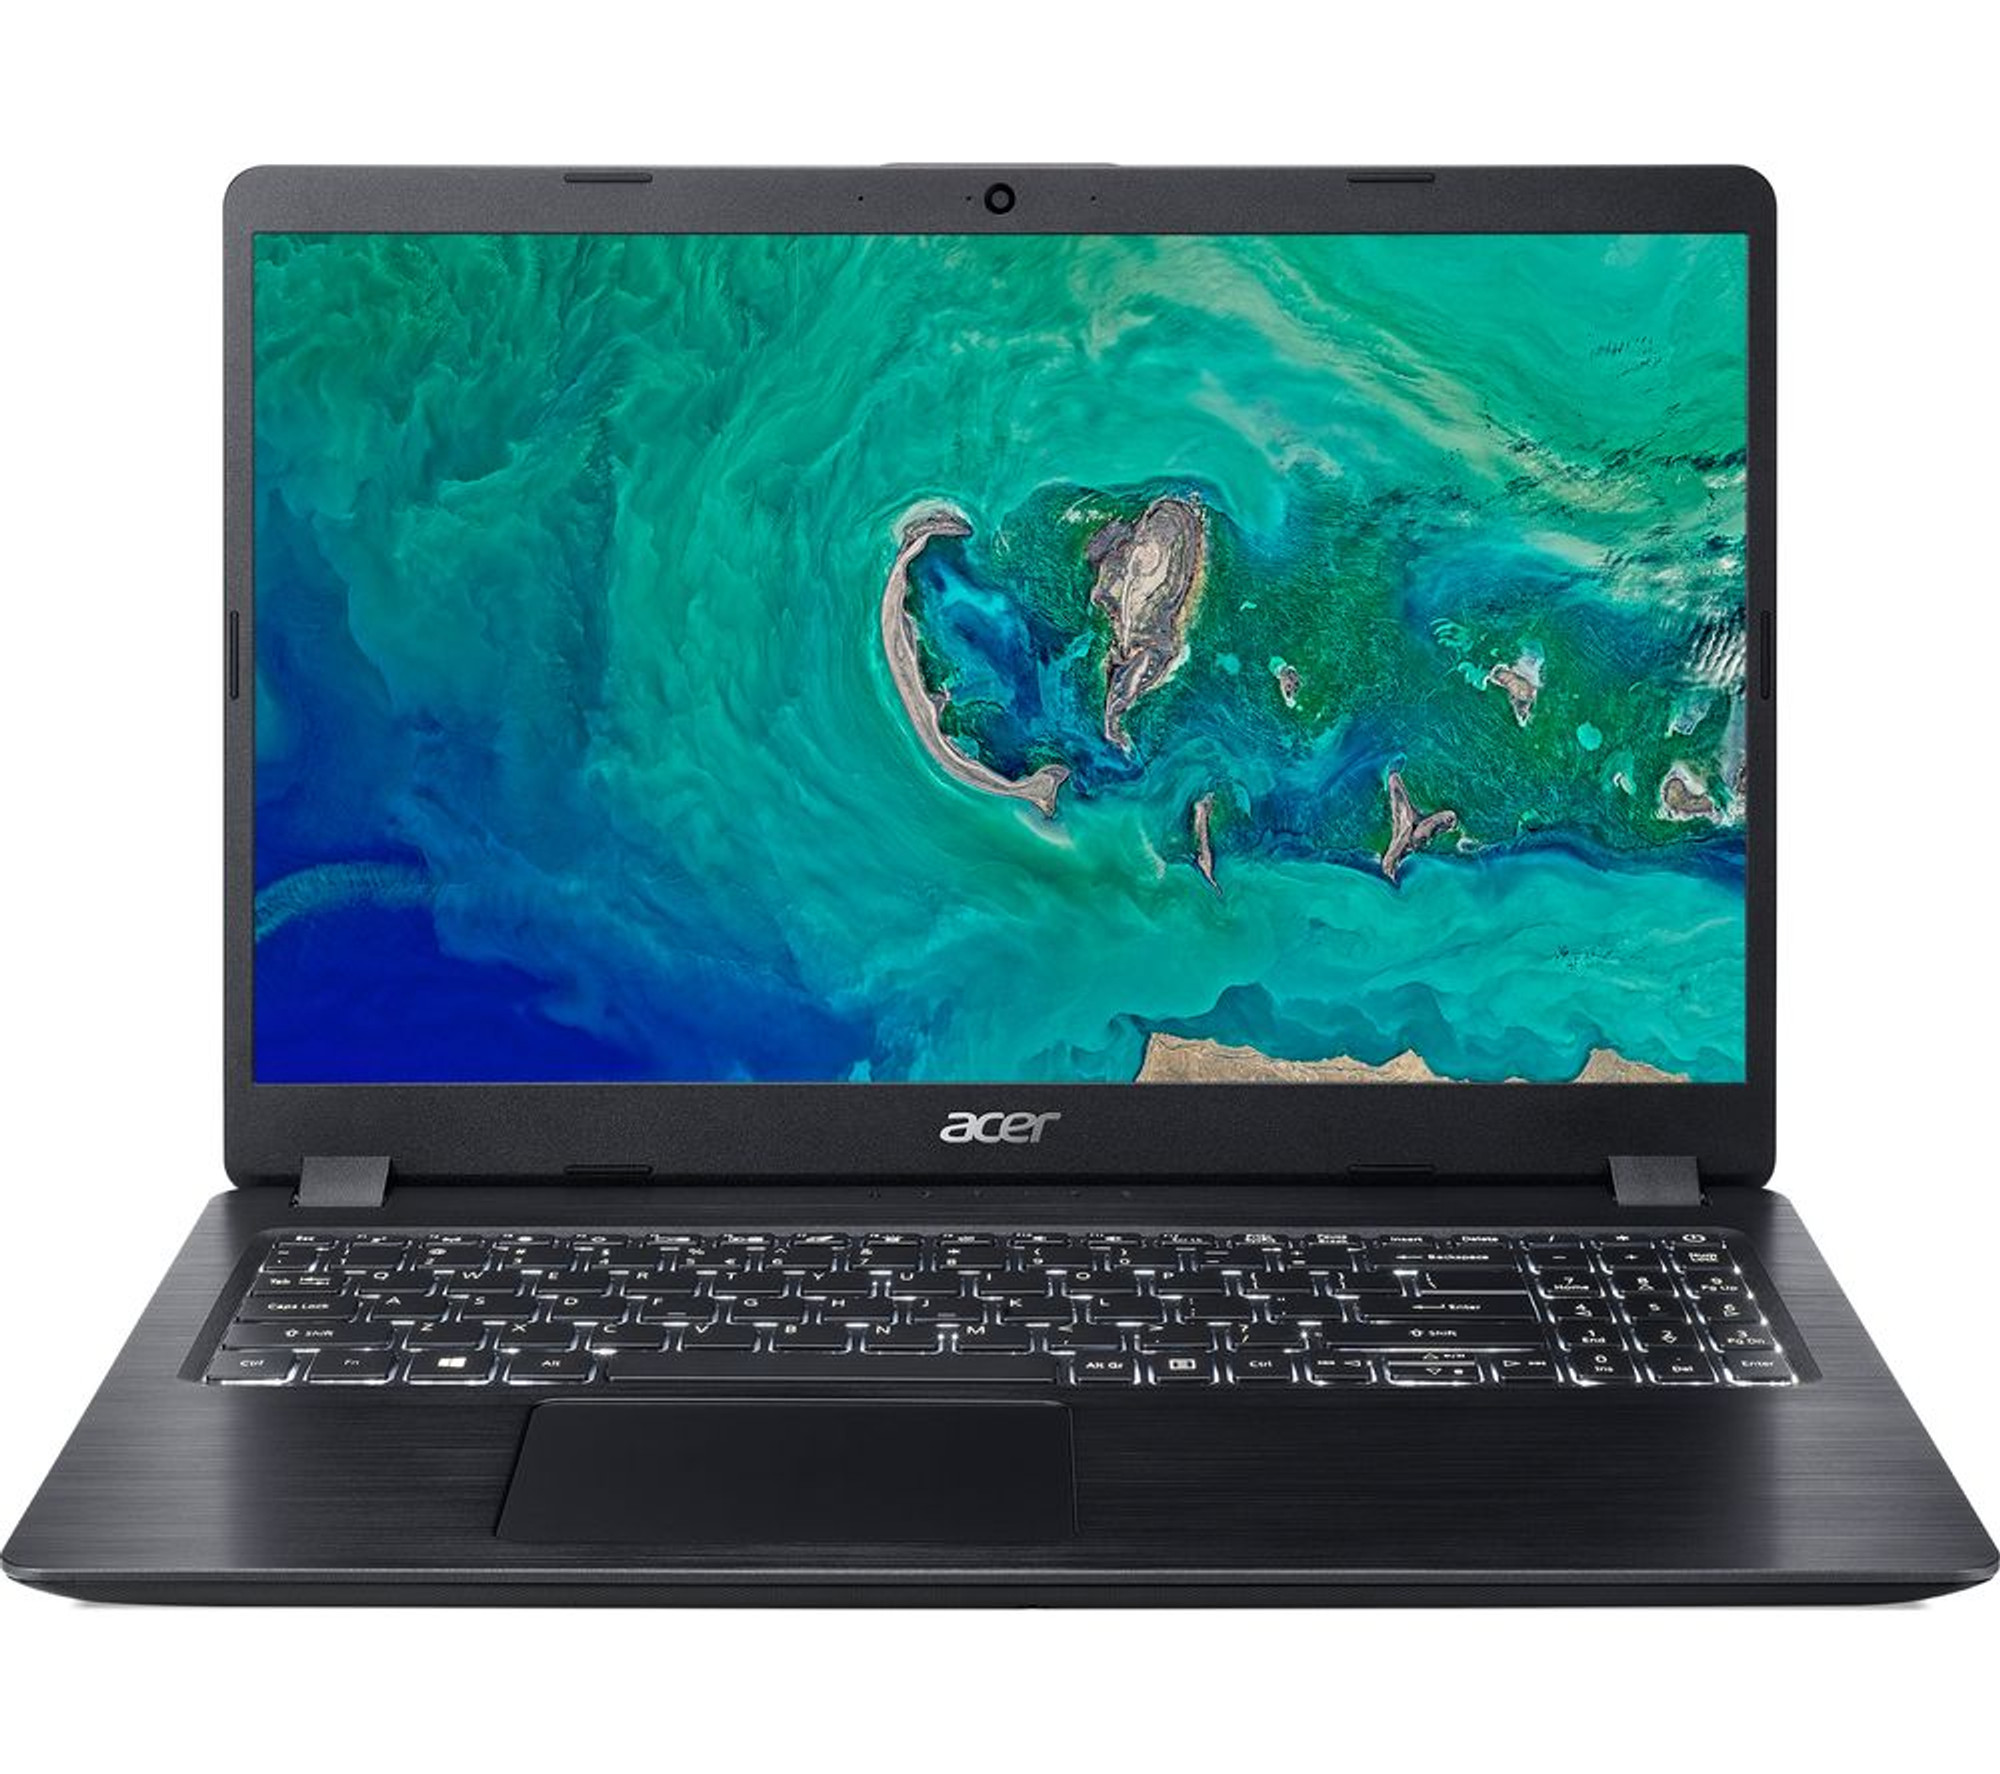 Acer Aspire 3 Laptop Amd A Series A9 9420e 1 80ghz 12gb Ram 1tb Hdd Win 10 Home